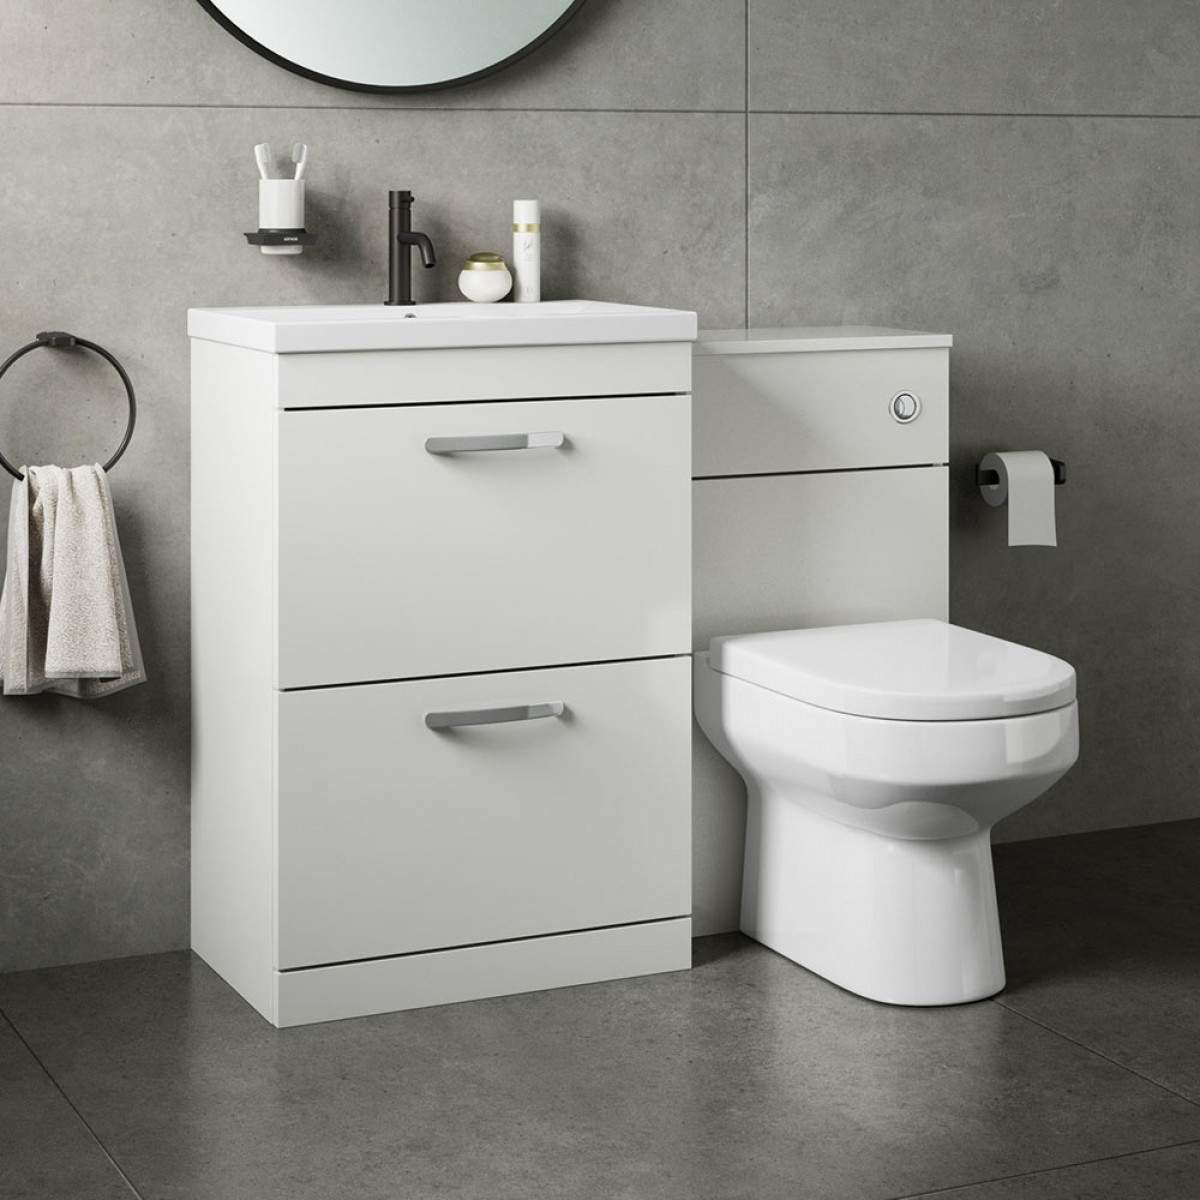 Units Lavatory Saving Vanity Small Shower Bathroom within dimensions 1200 X 1200